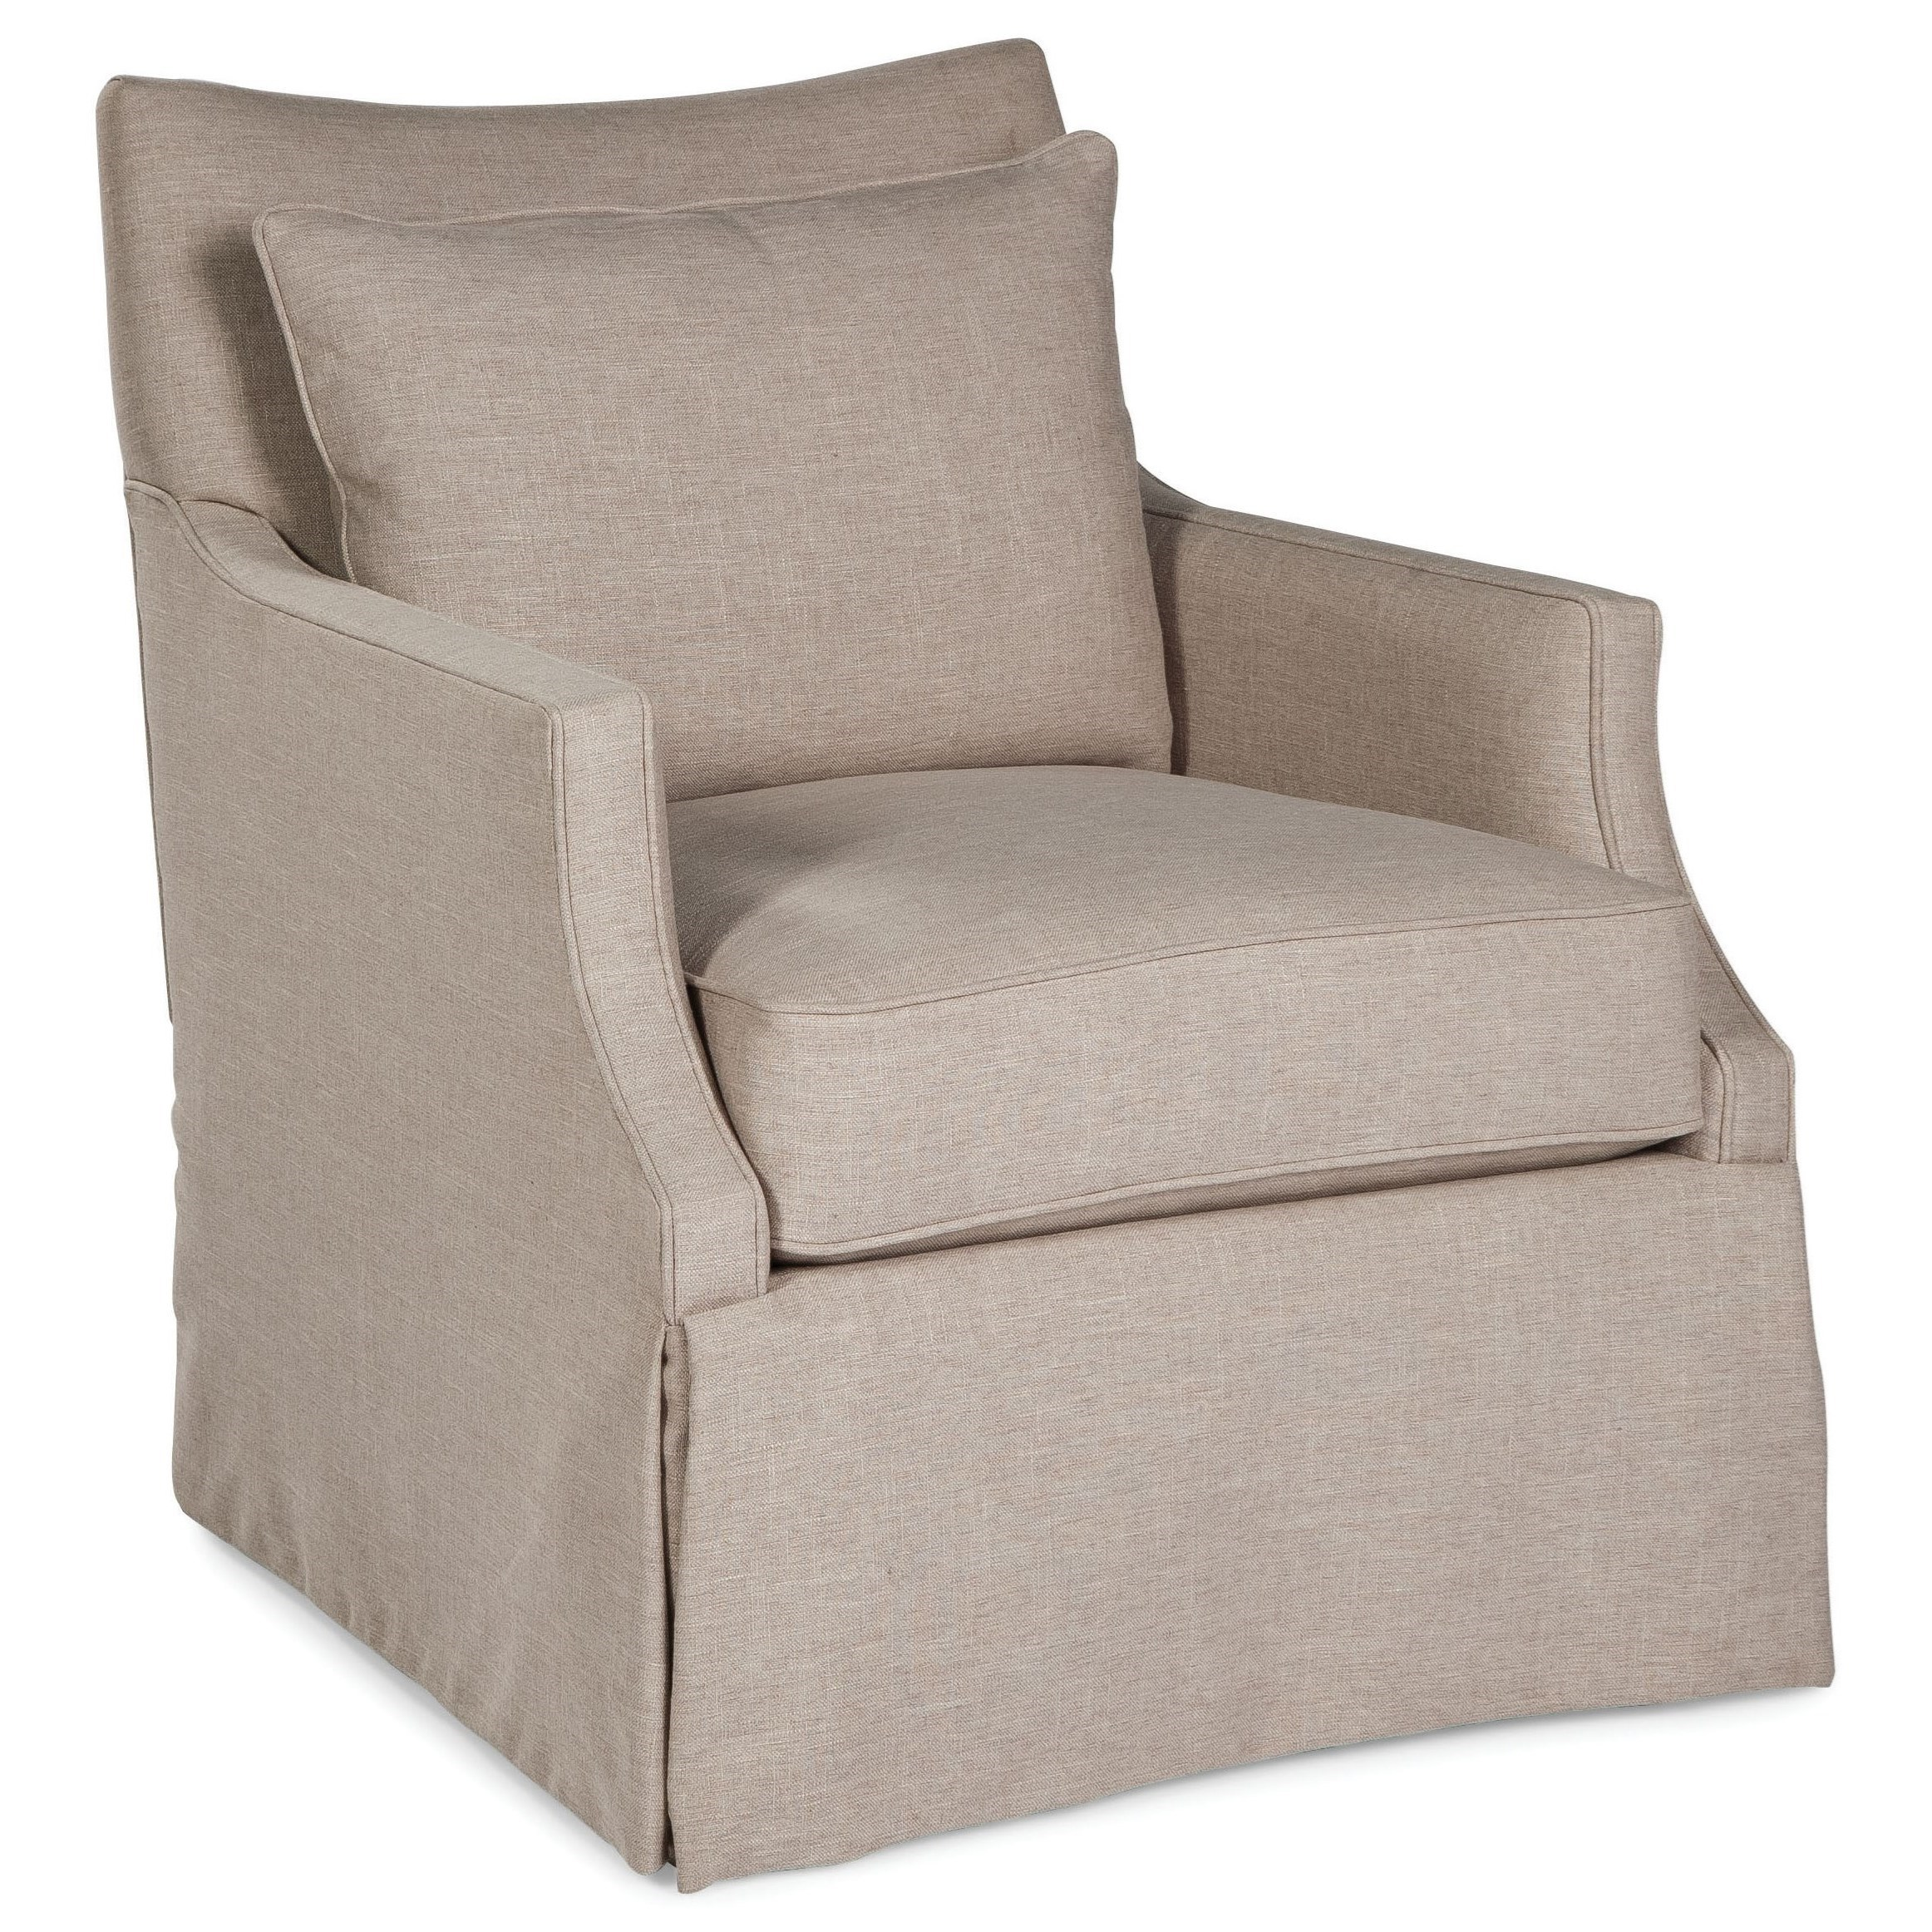 Fairfield Swivel Accent Chairs Swivel Chair With Loose Pillow Cushions